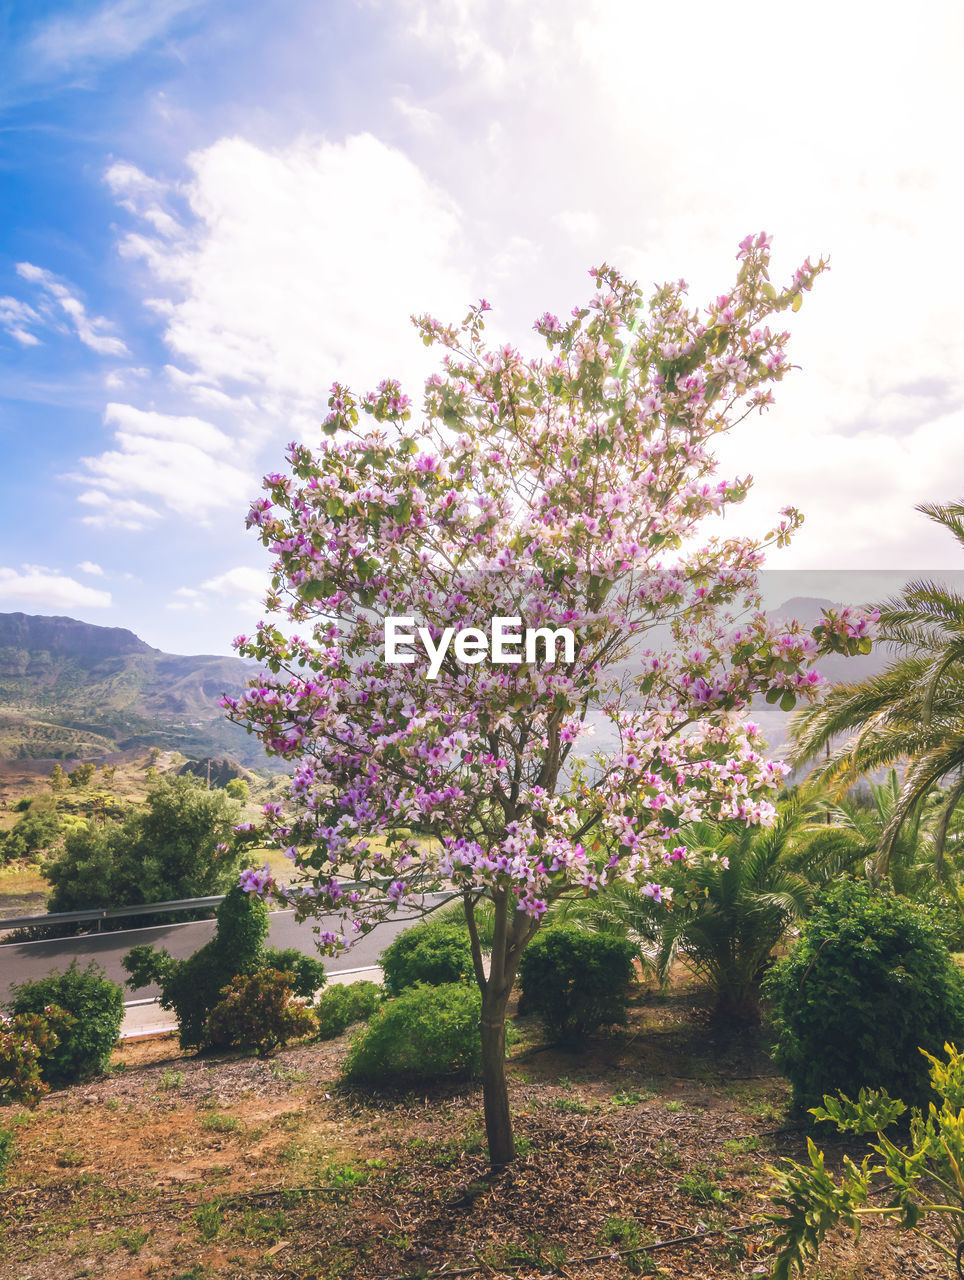 VIEW OF CHERRY BLOSSOM TREE IN GARDEN